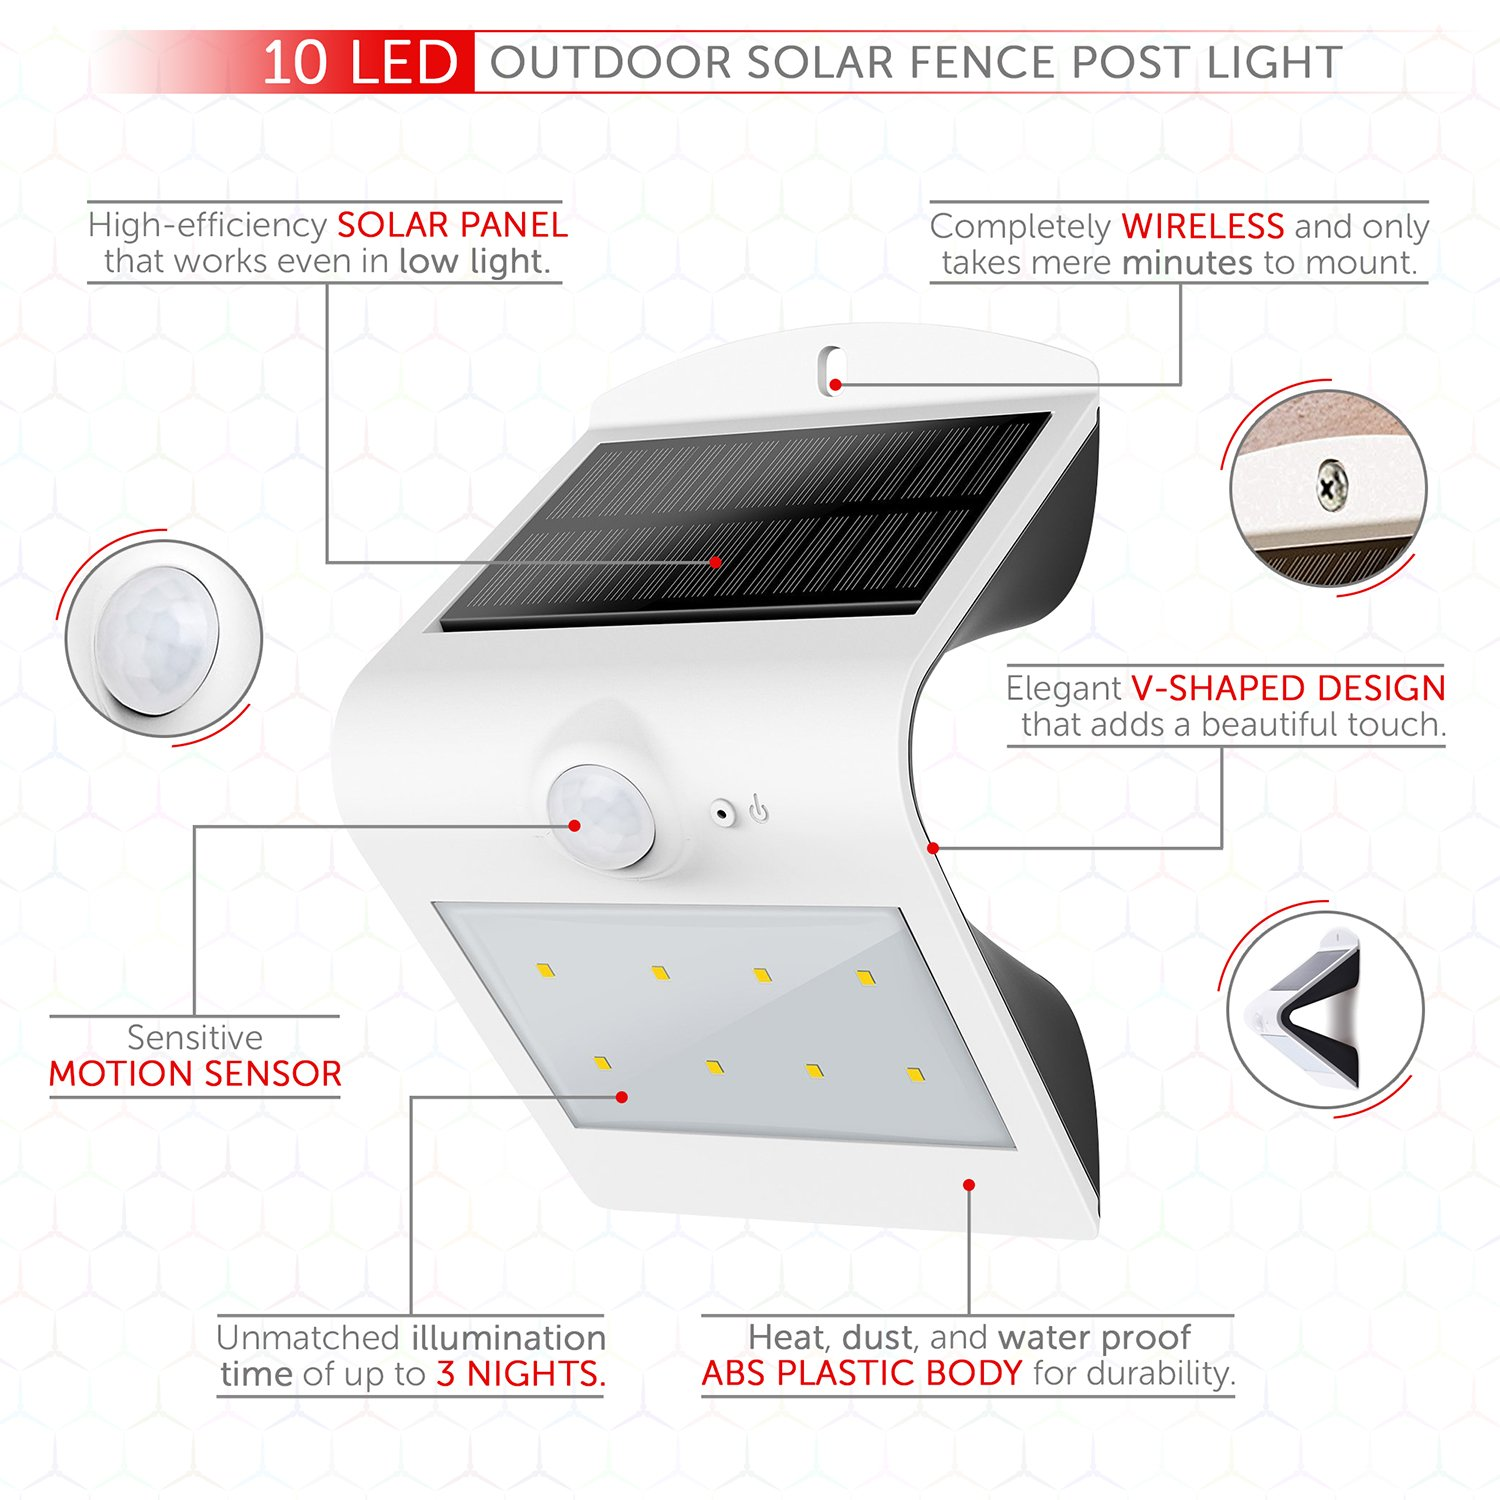 10 Led Outdoor Solar Fence Post Light Motion Activated Wiring Diagram Security Lighting Wireless Exterior Lantern Unmatched Operating Time Best Spotlight